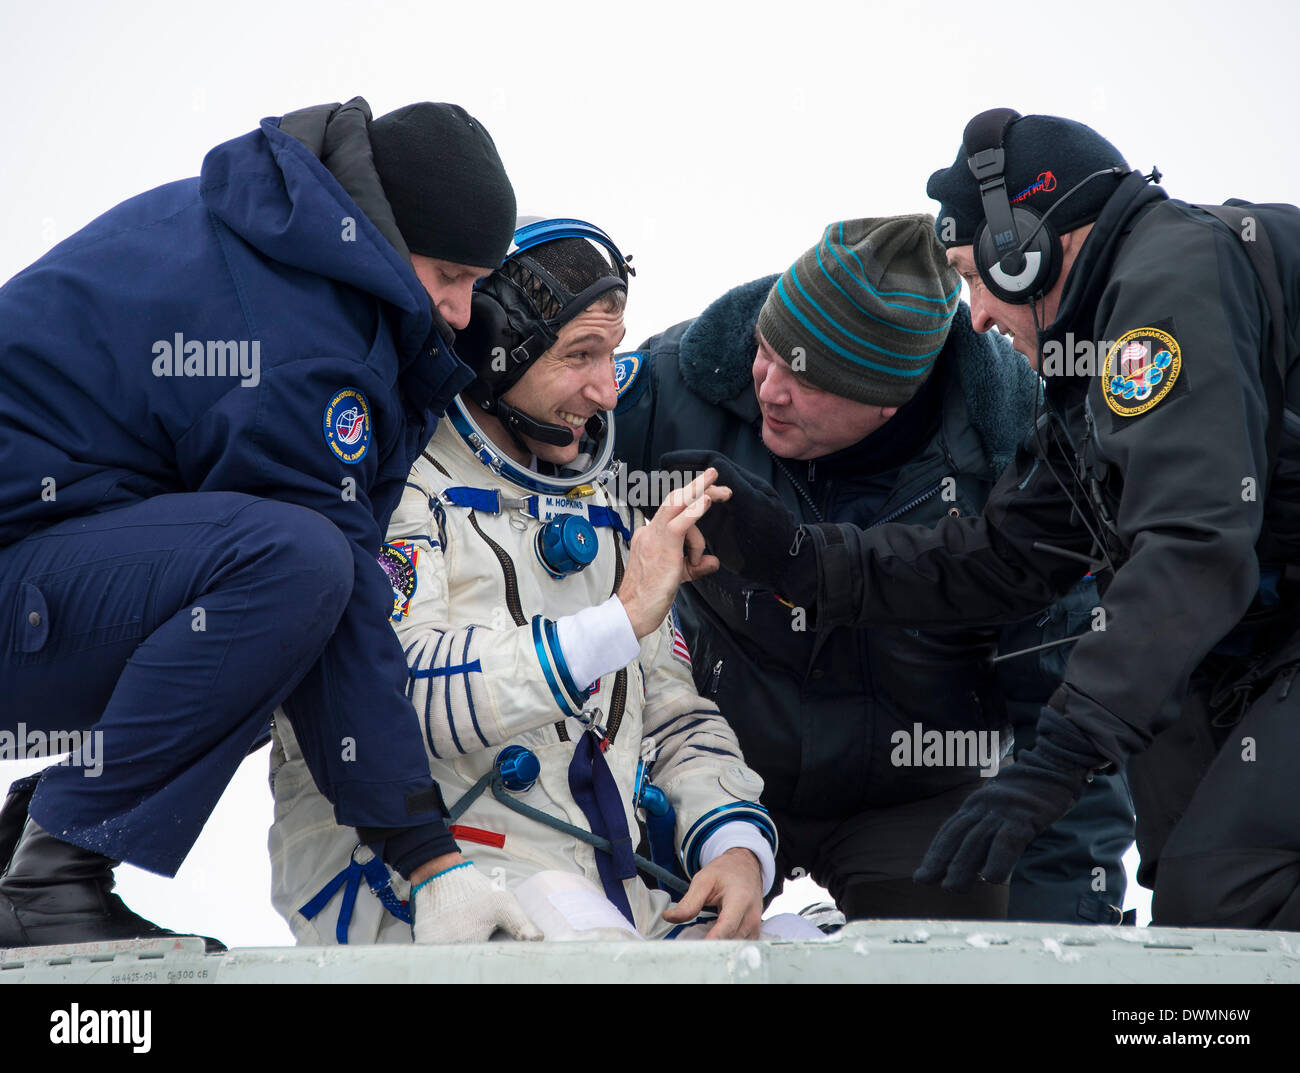 International Space State Expedition 38 astronaut Mike Hopkins of NASA is lifted out of the Soyuz Capsule after landing in a Soyuz TMA-10M spacecraft March 11, 2014 near the town of Zhezkazgan, Kazakhstan. Hopkins, Kotov and Ryazanskiy returned to Earth after five and a half months onboard the International Space Station where they served as members of the Expedition 37 and 38 crews. - Stock Image